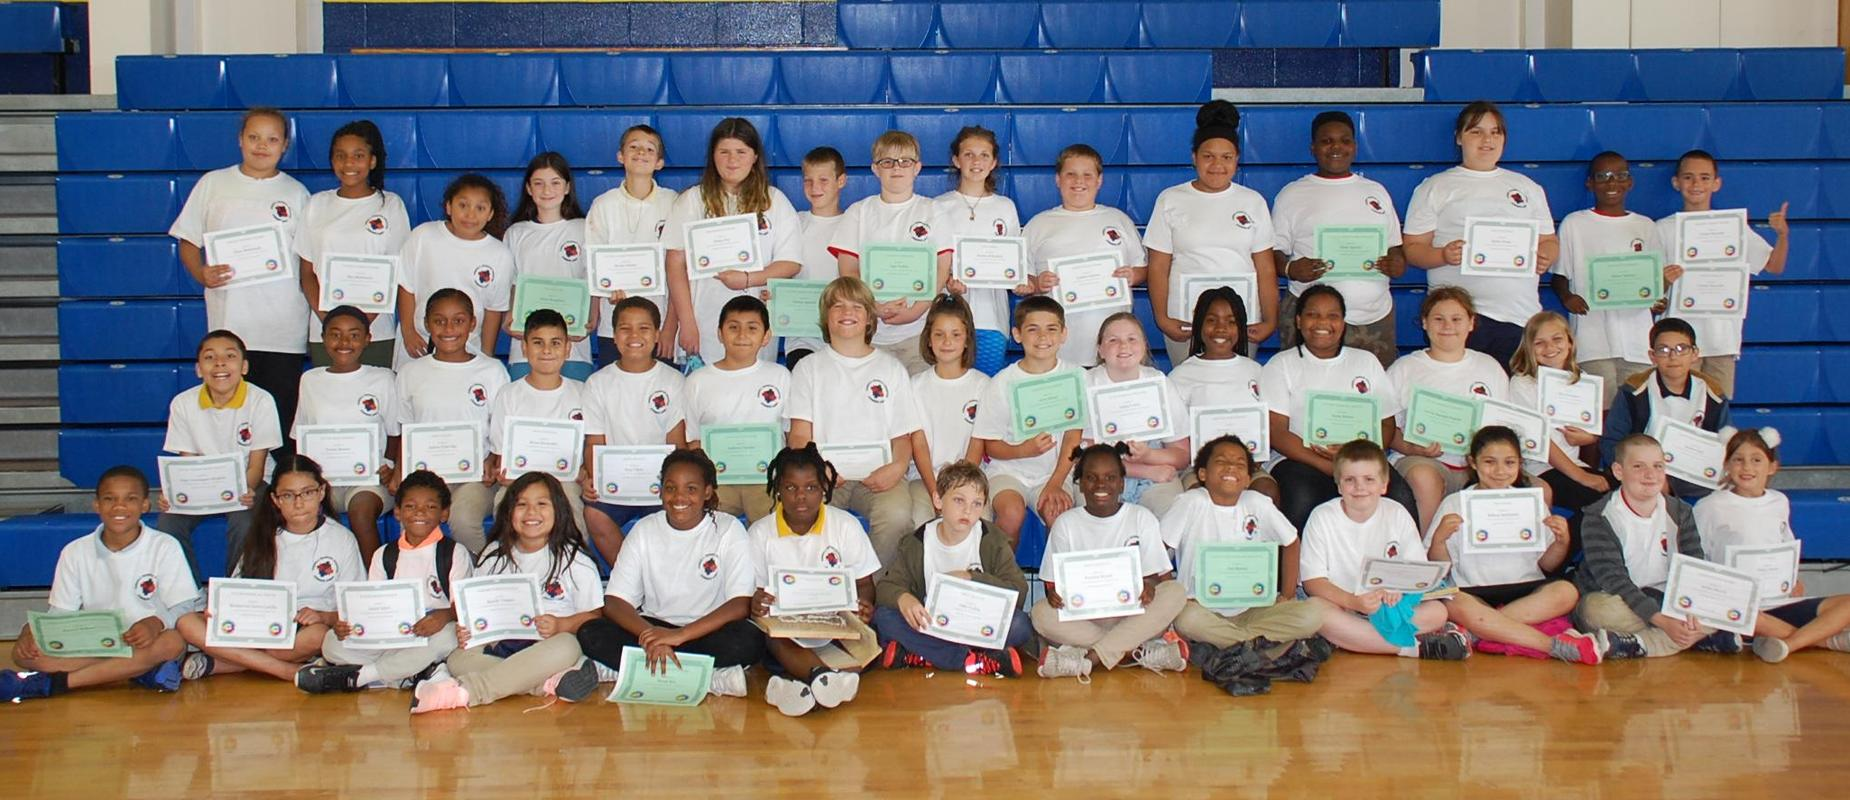 students holding certificates in front of bleachers in the gym